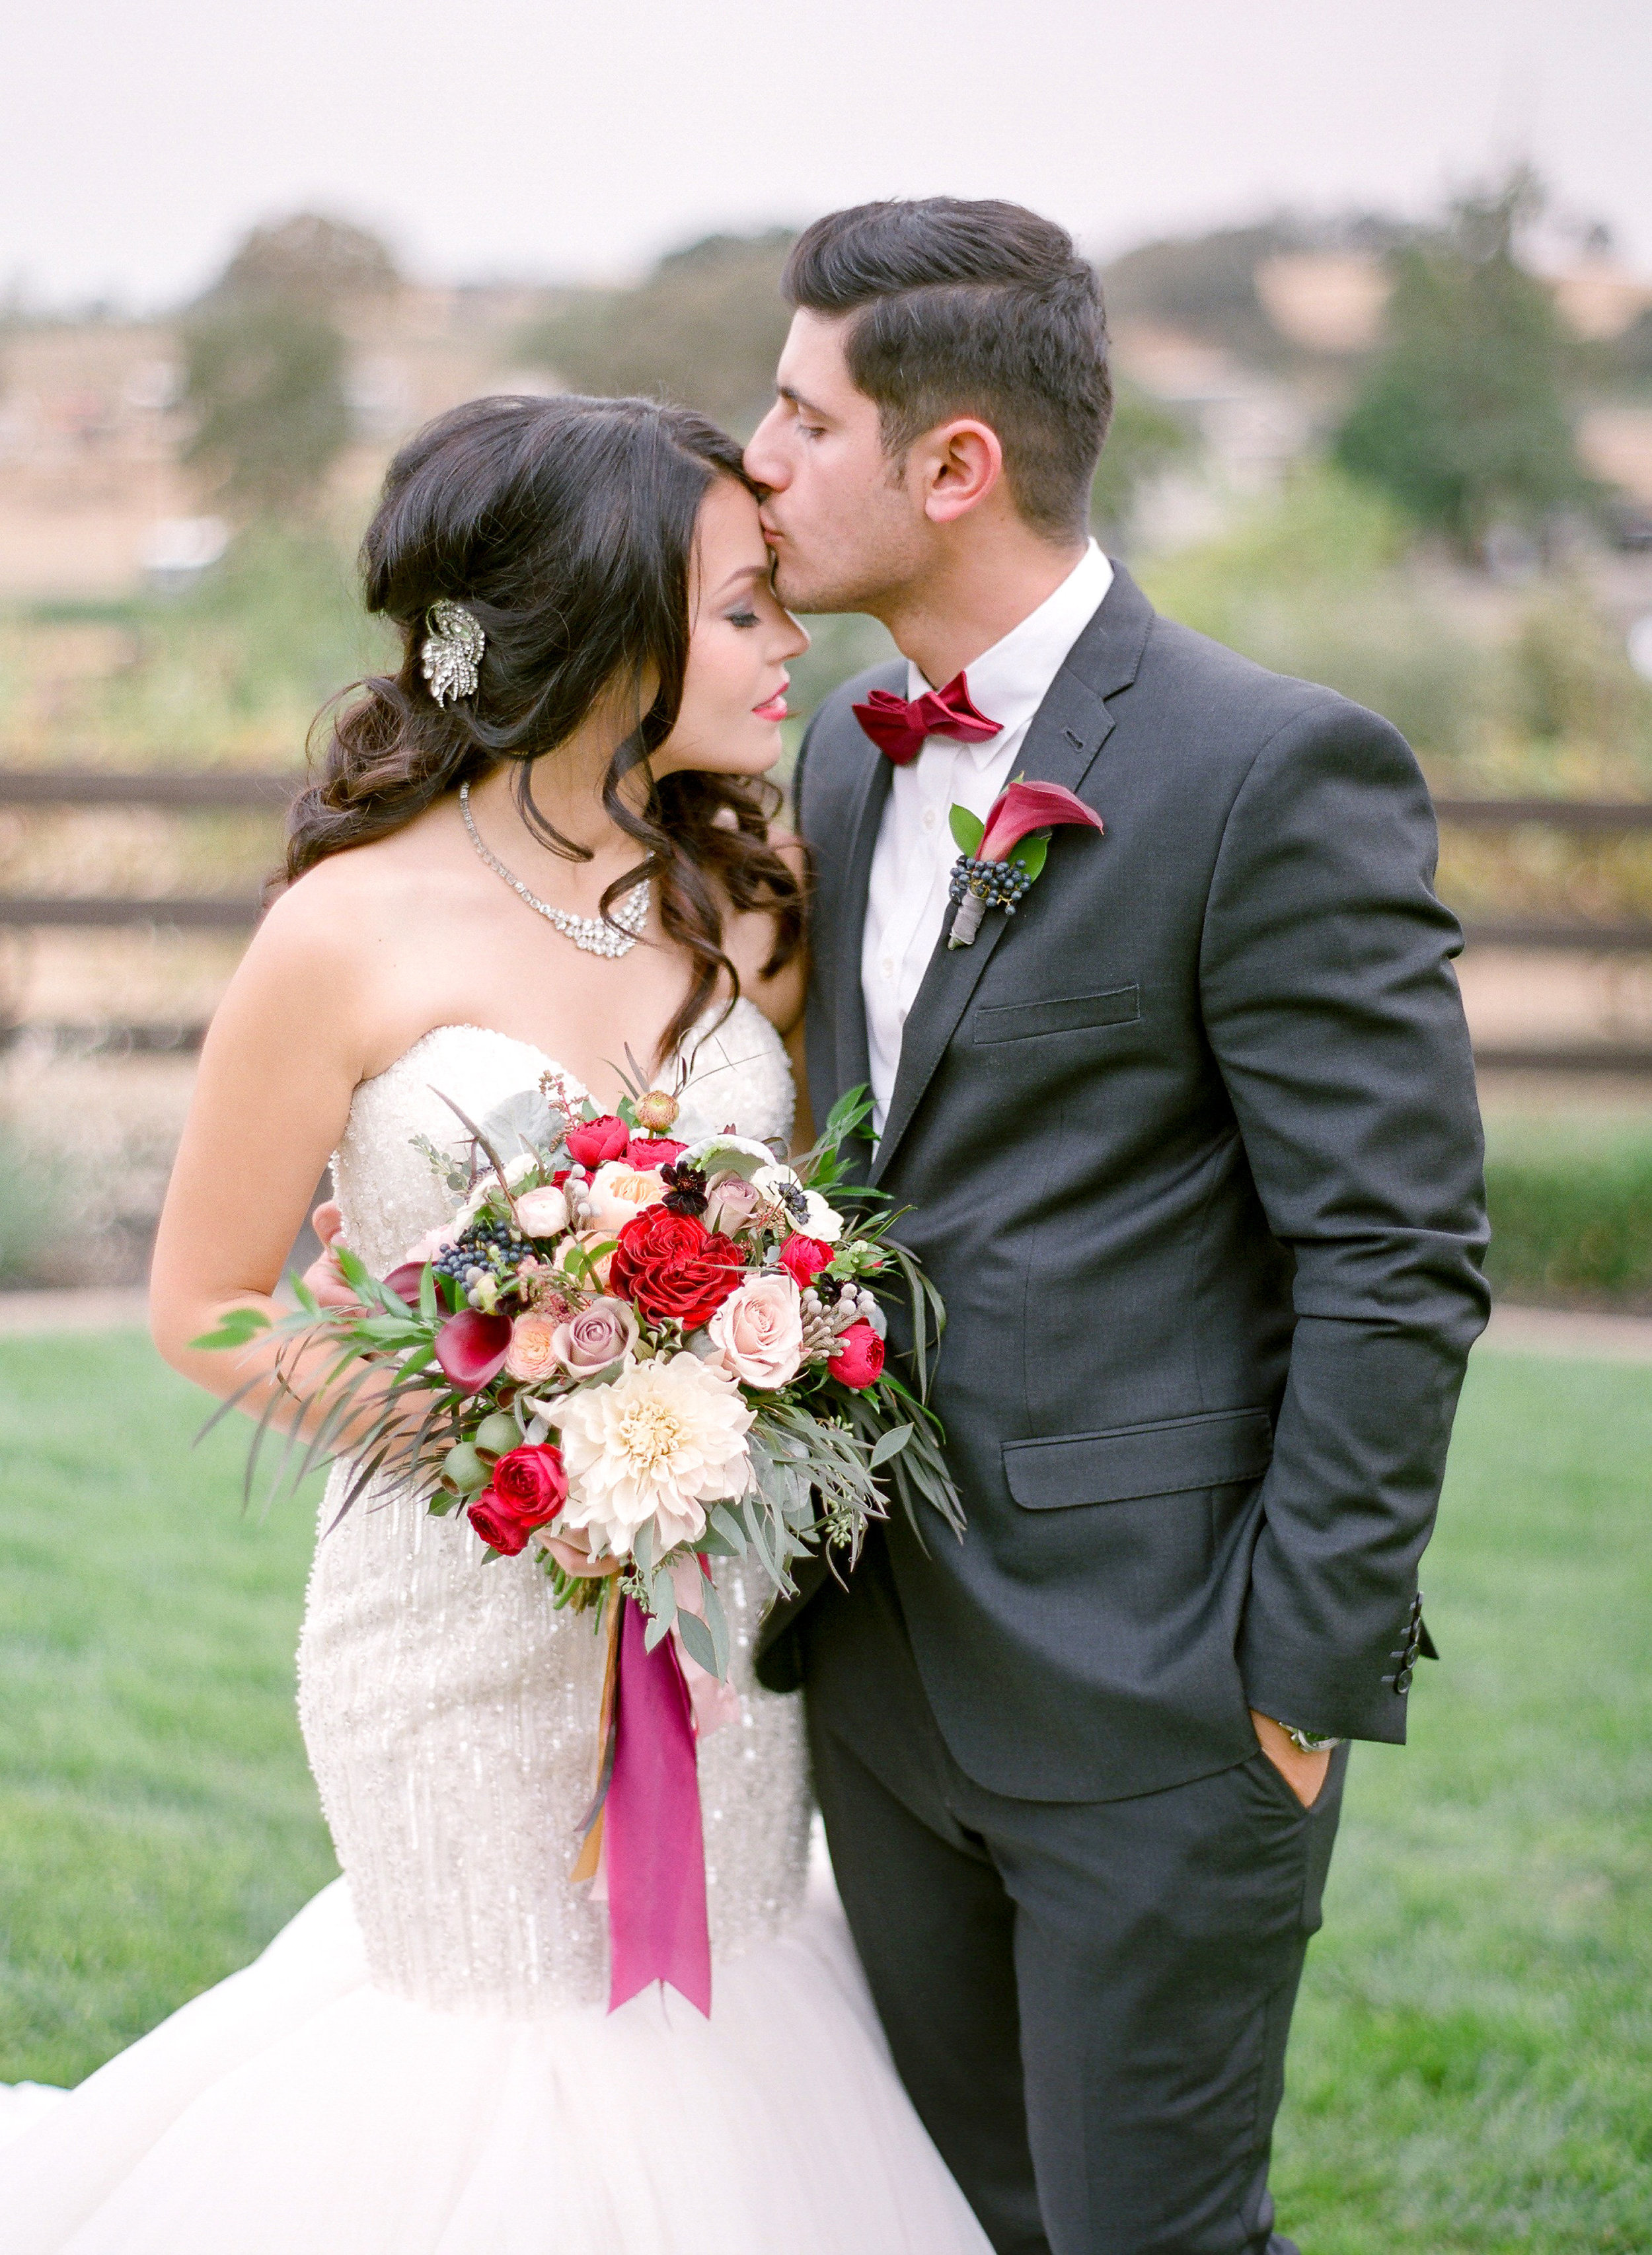 Amador_County_Wedding_Bride_Groom_Forhead_Kiss_Bouquet_Boutonniere_Rancho_Victoria_Vineyard_Northern_California.jpg